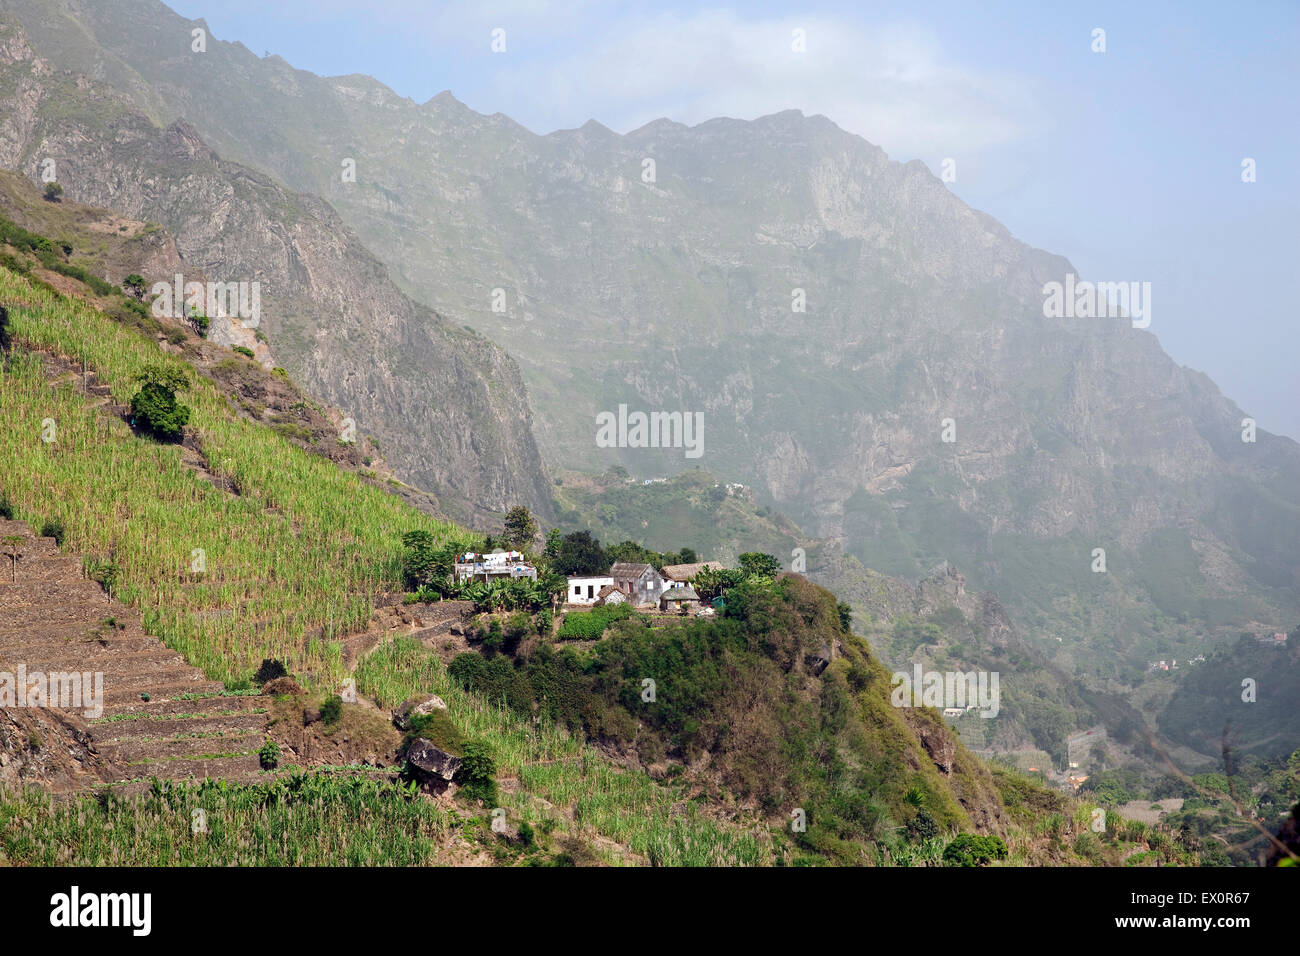 Terraced field with sugar cane plants in the Ribeira Grande Valley on the island Santo Antão, Cape Verde / - Stock Image